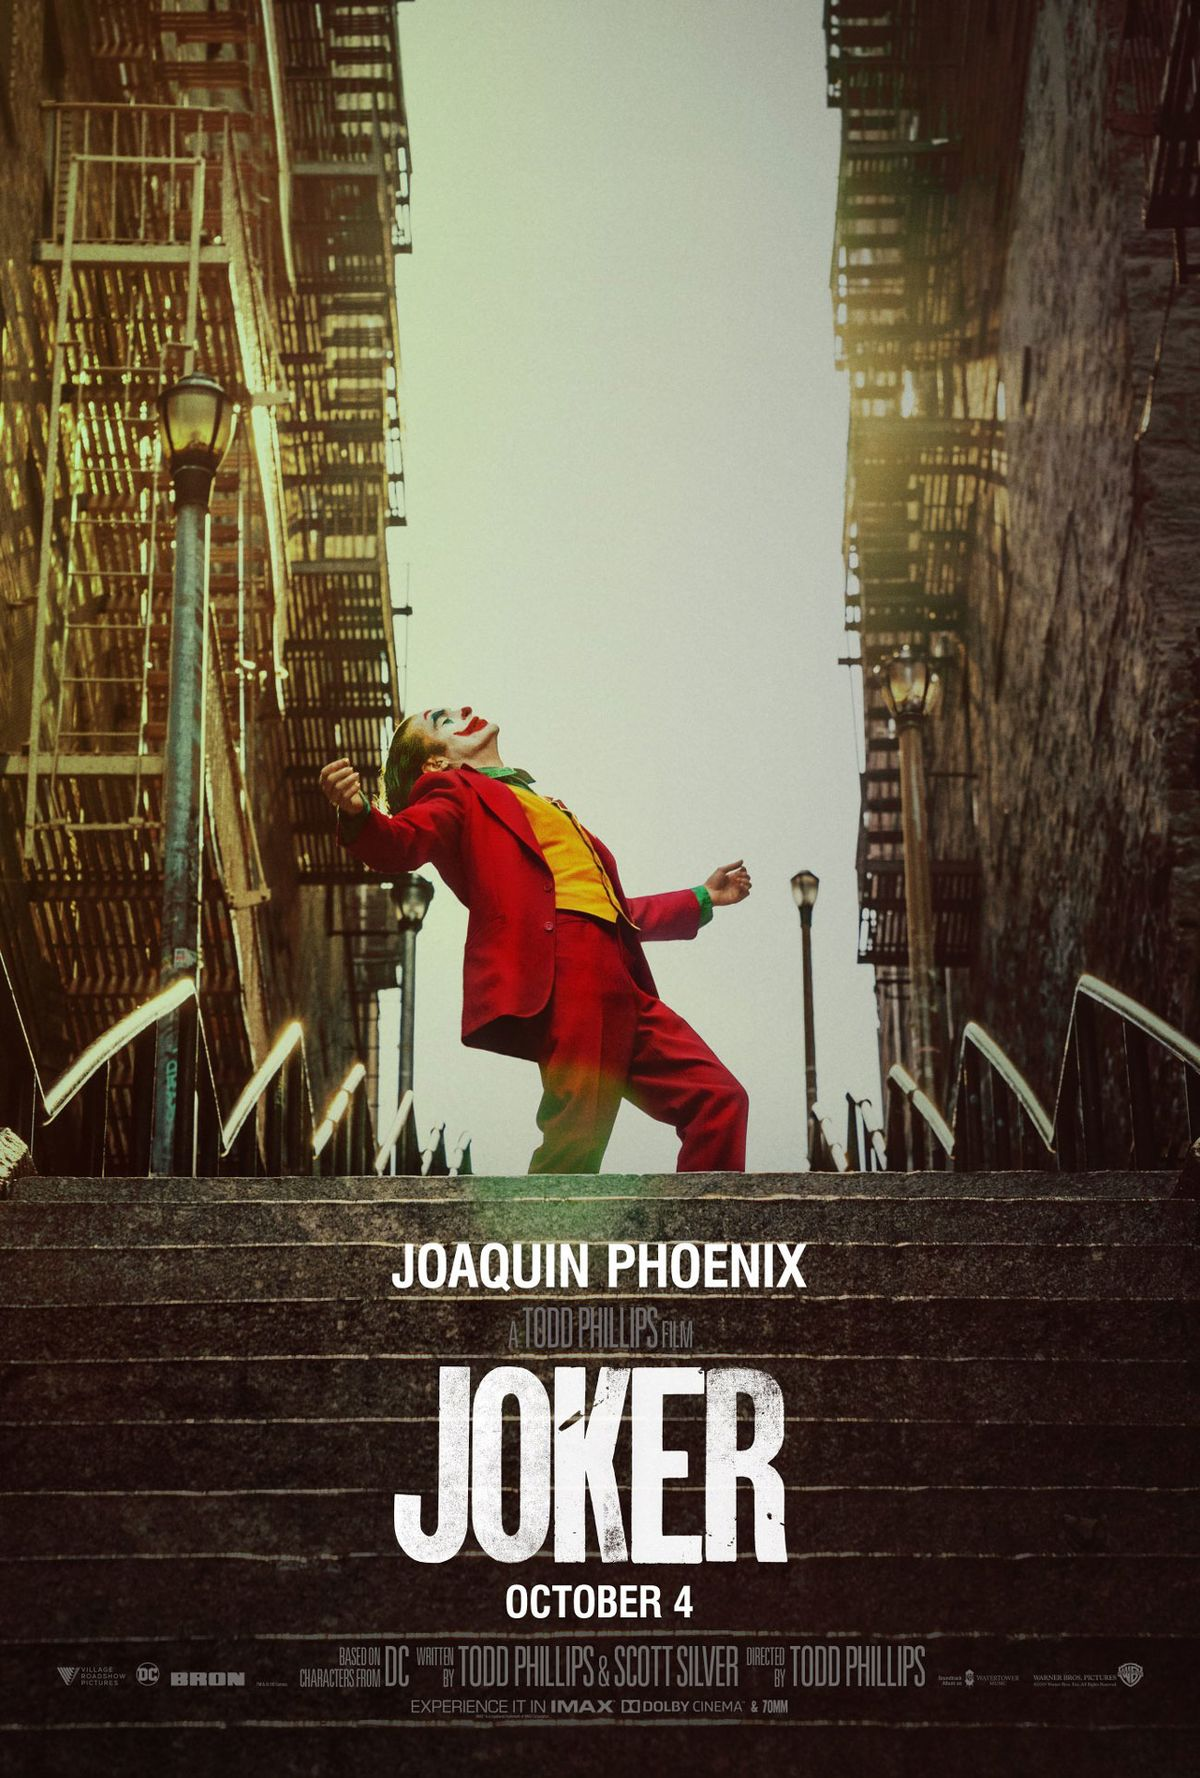 Financier for 'Joker' Has Made Movies Into Ultimate Yield Play